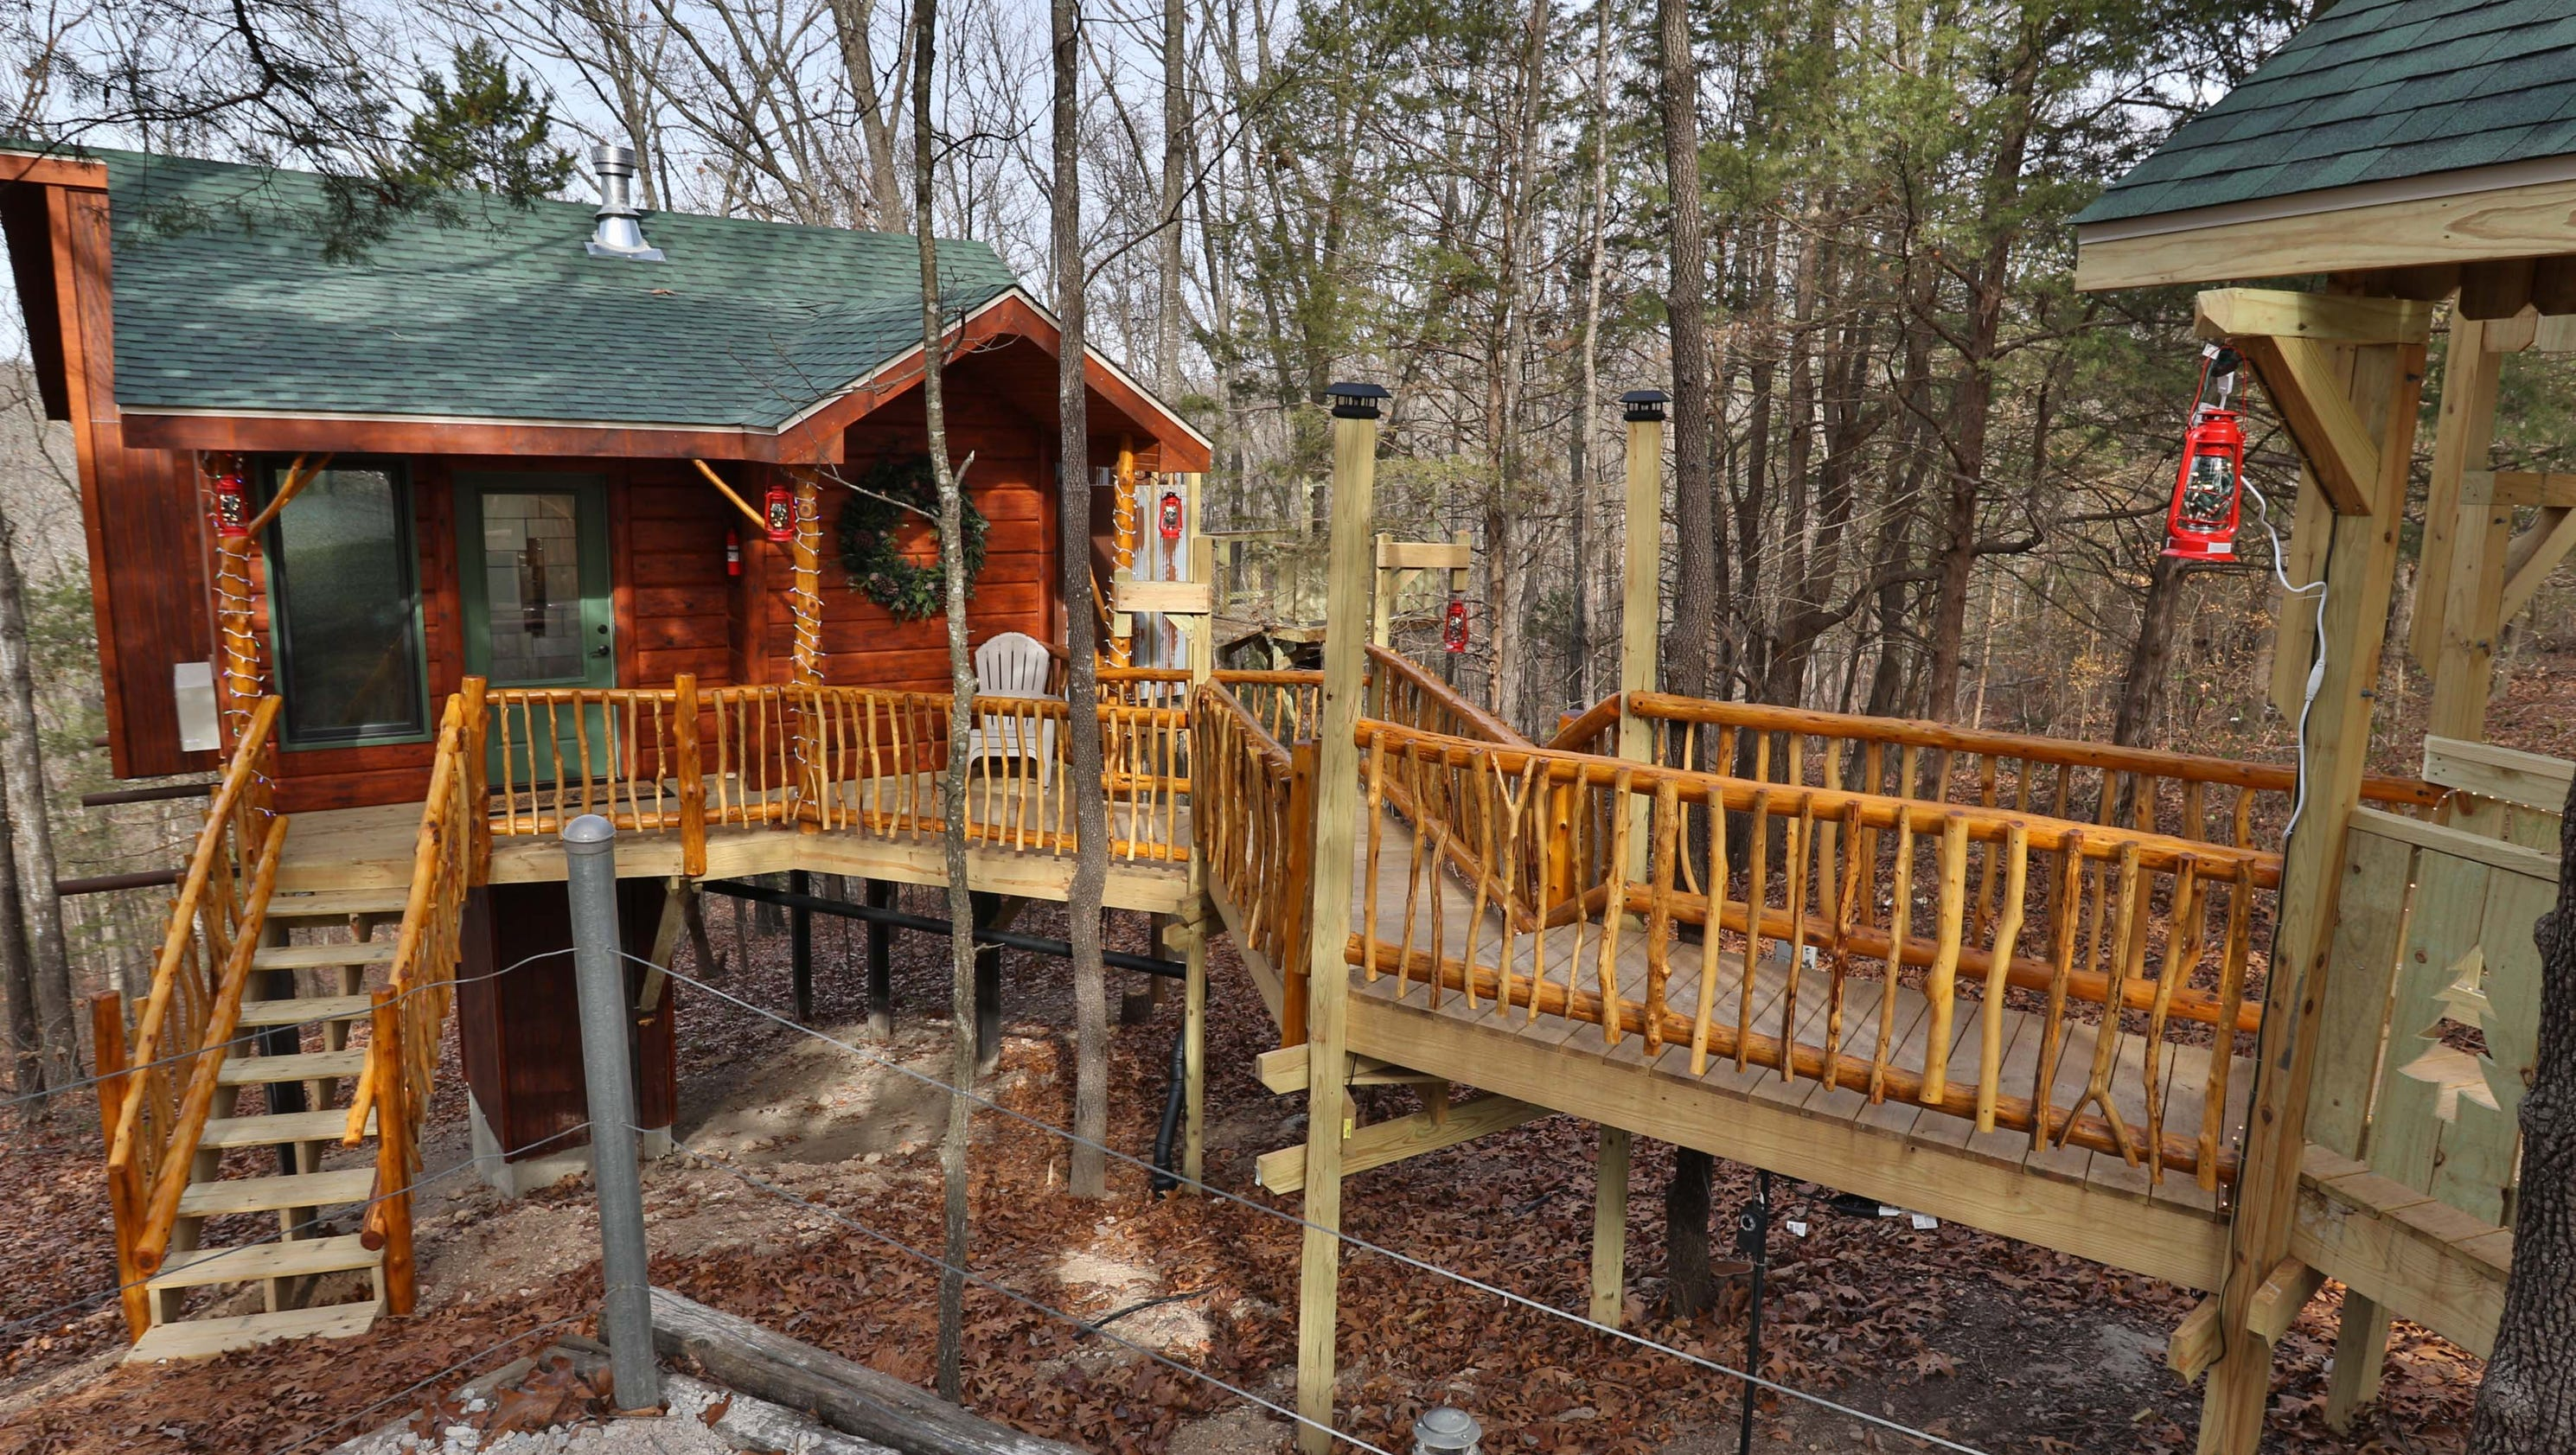 branson canal river deer park accommodations cabins edge at s